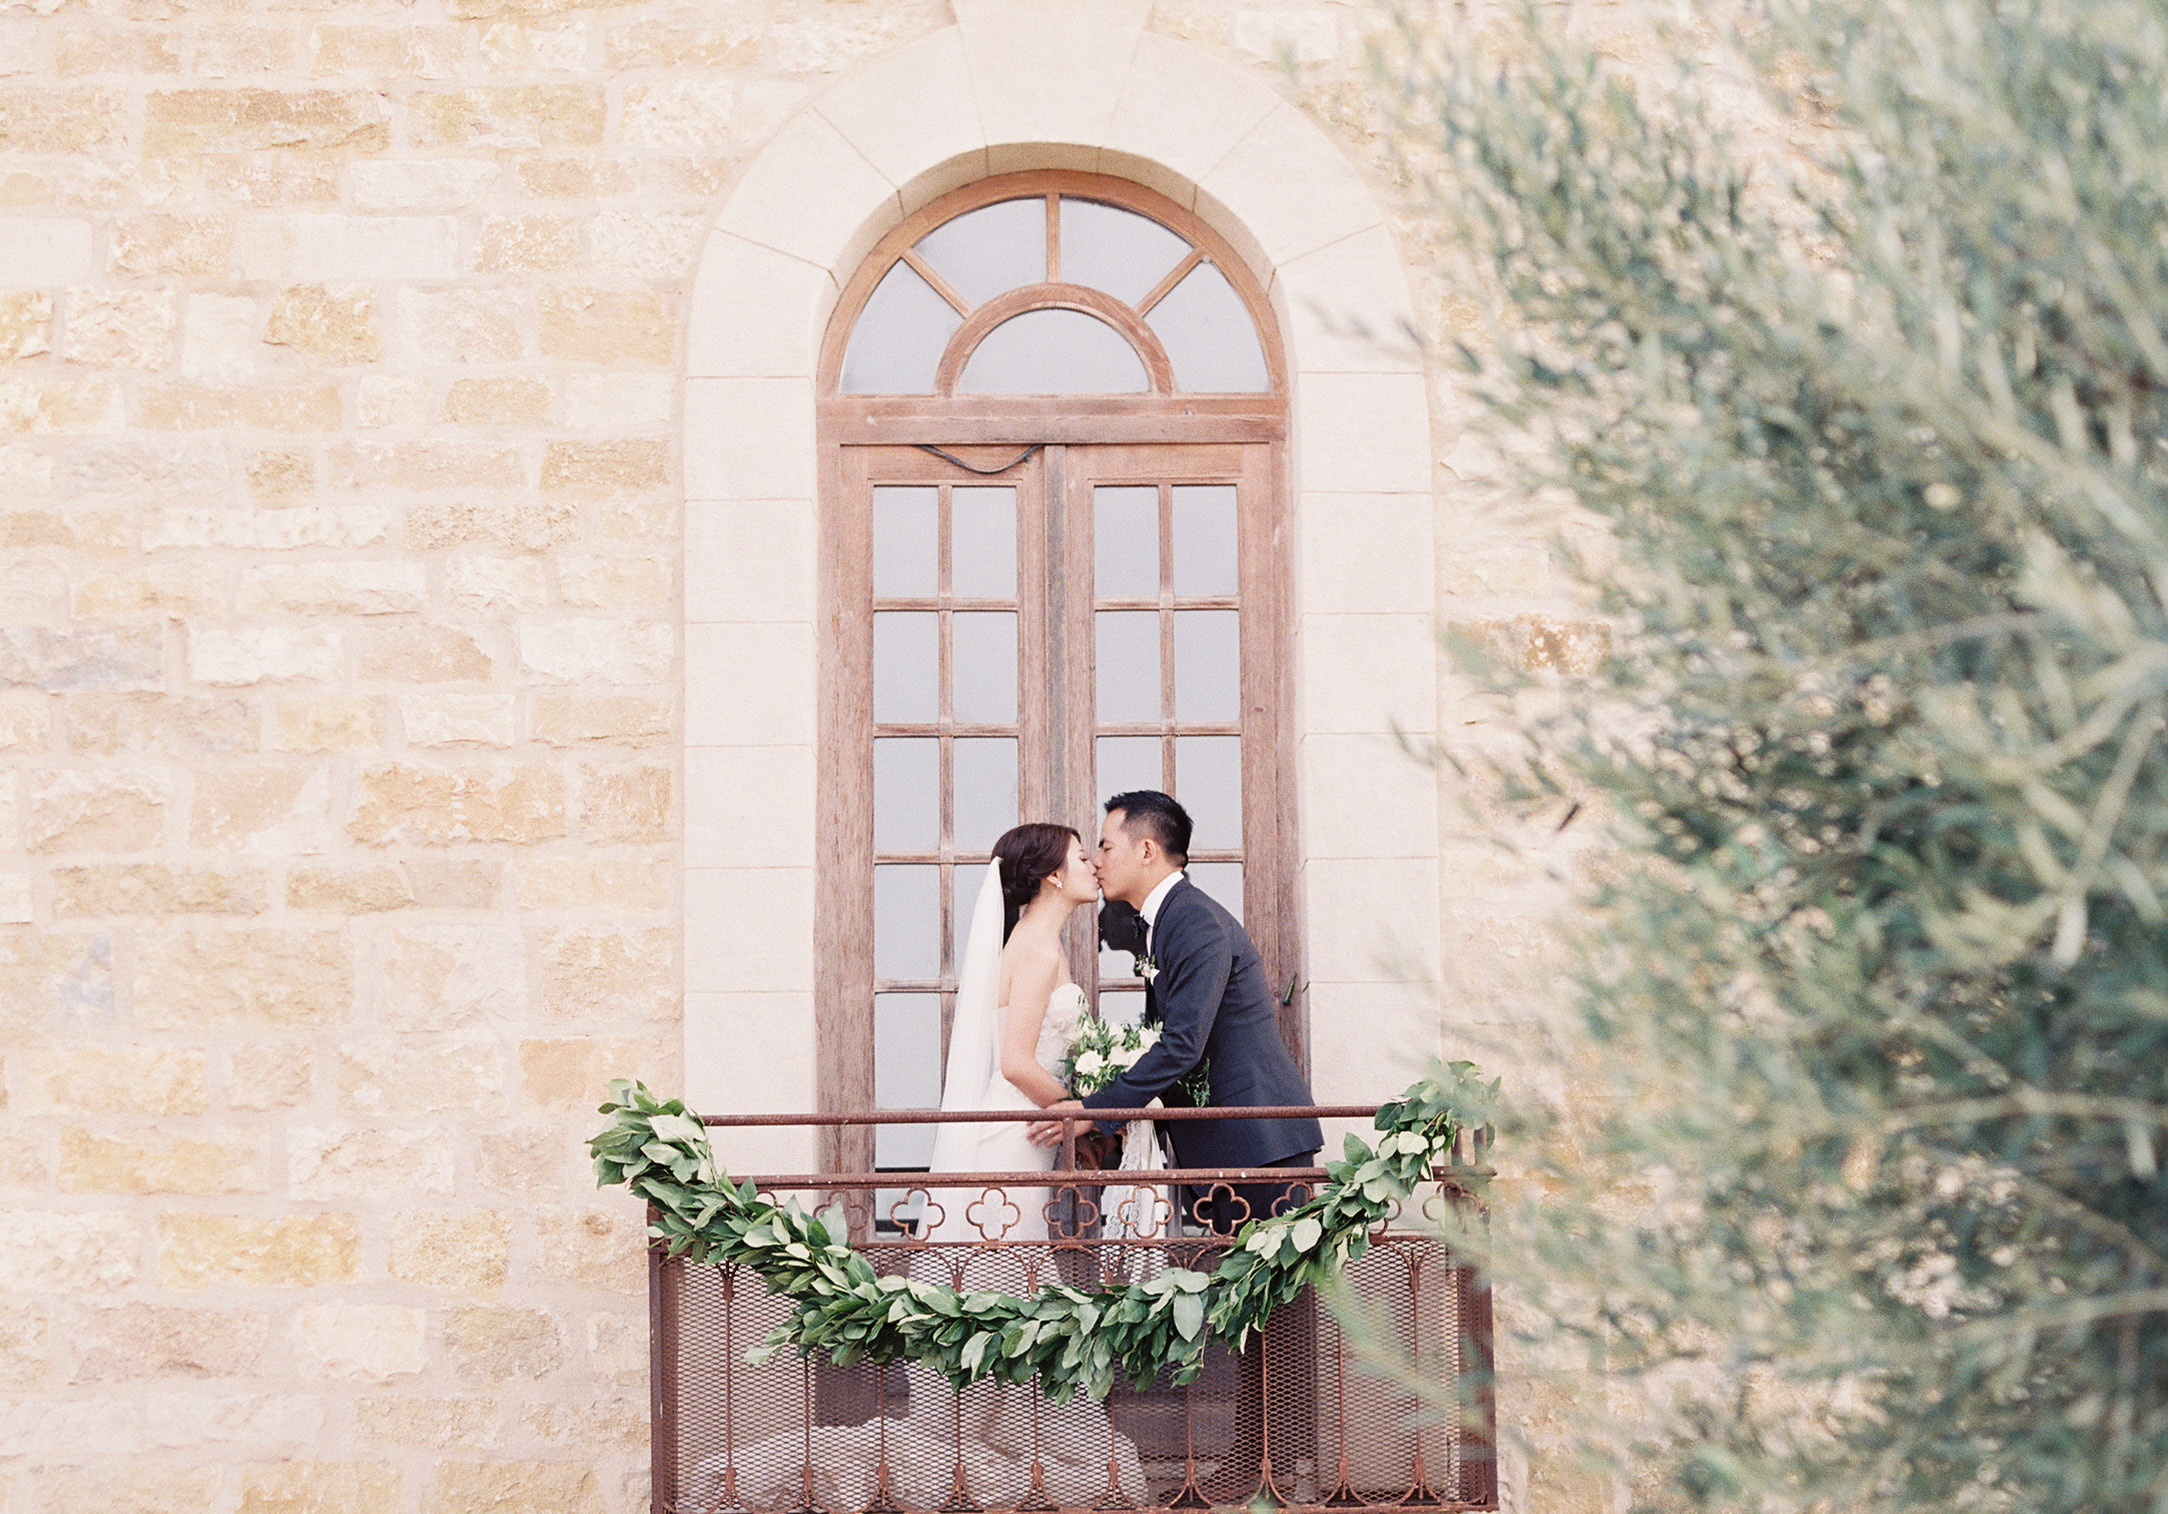 Santa Ynez Wedding - Sunstone Villa at Sunstone Winery